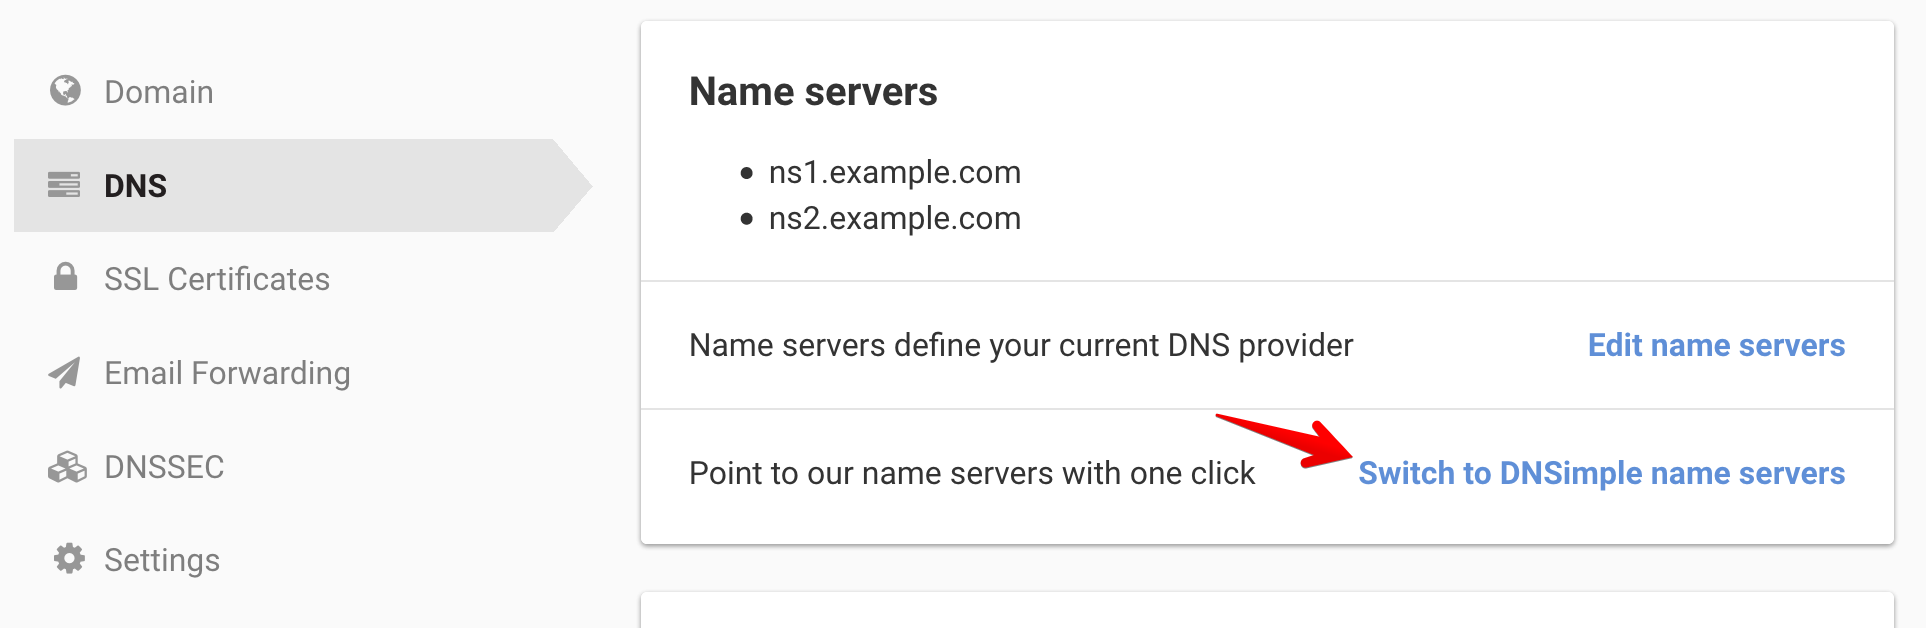 Switch Name Servers link